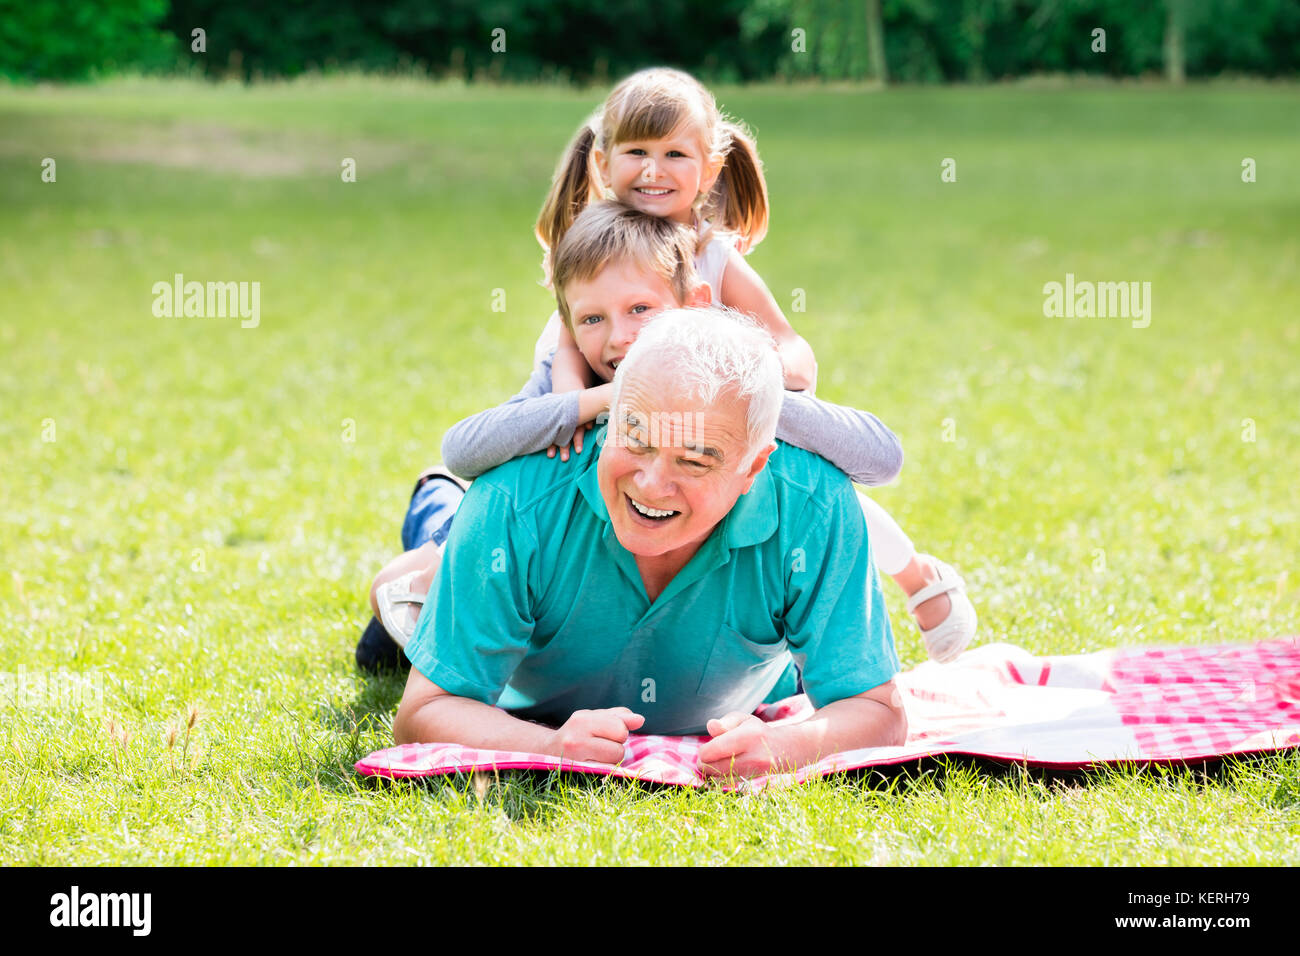 Portrait of happy family having fun lying on Green grass together in park Banque D'Images